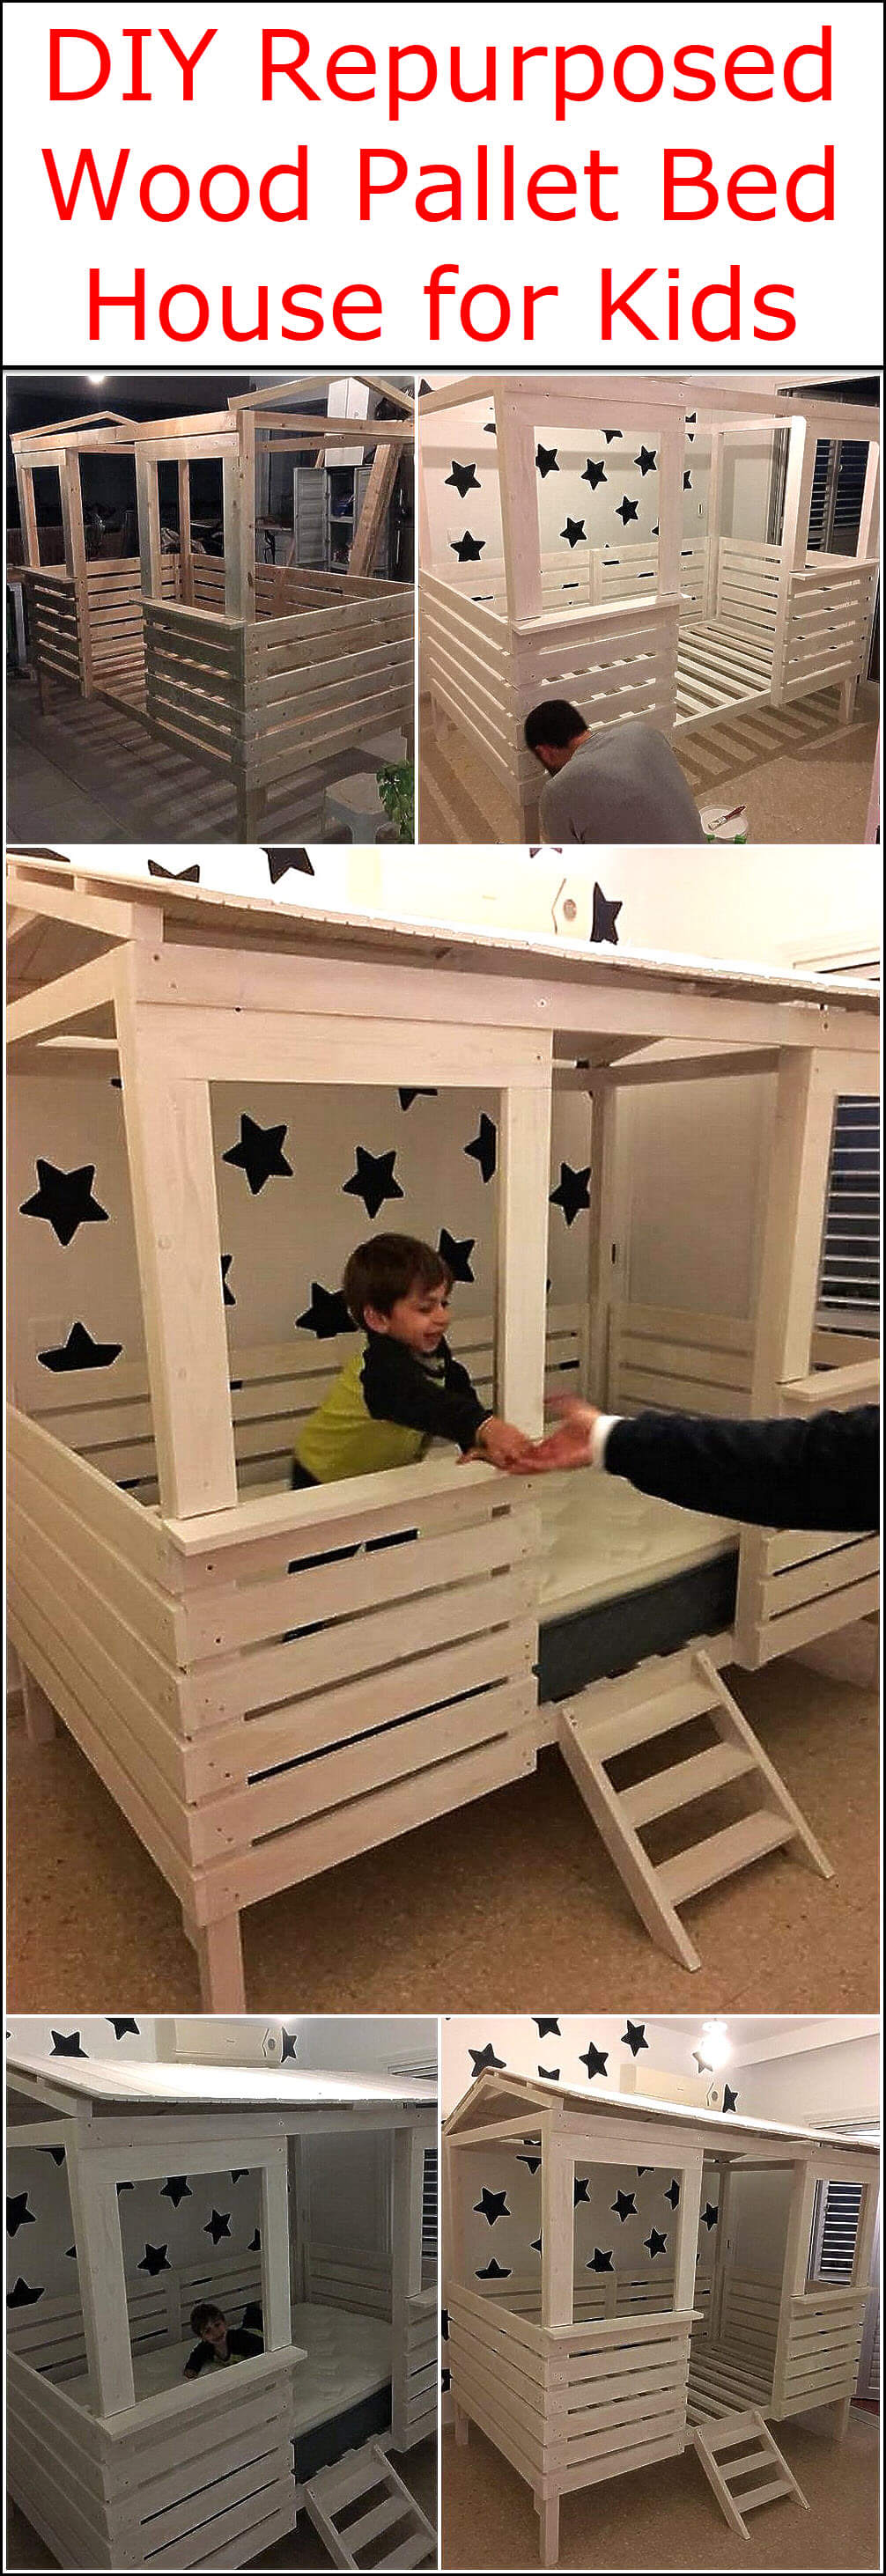 DIY Repurposed Wood Pallet Bed House for Kids